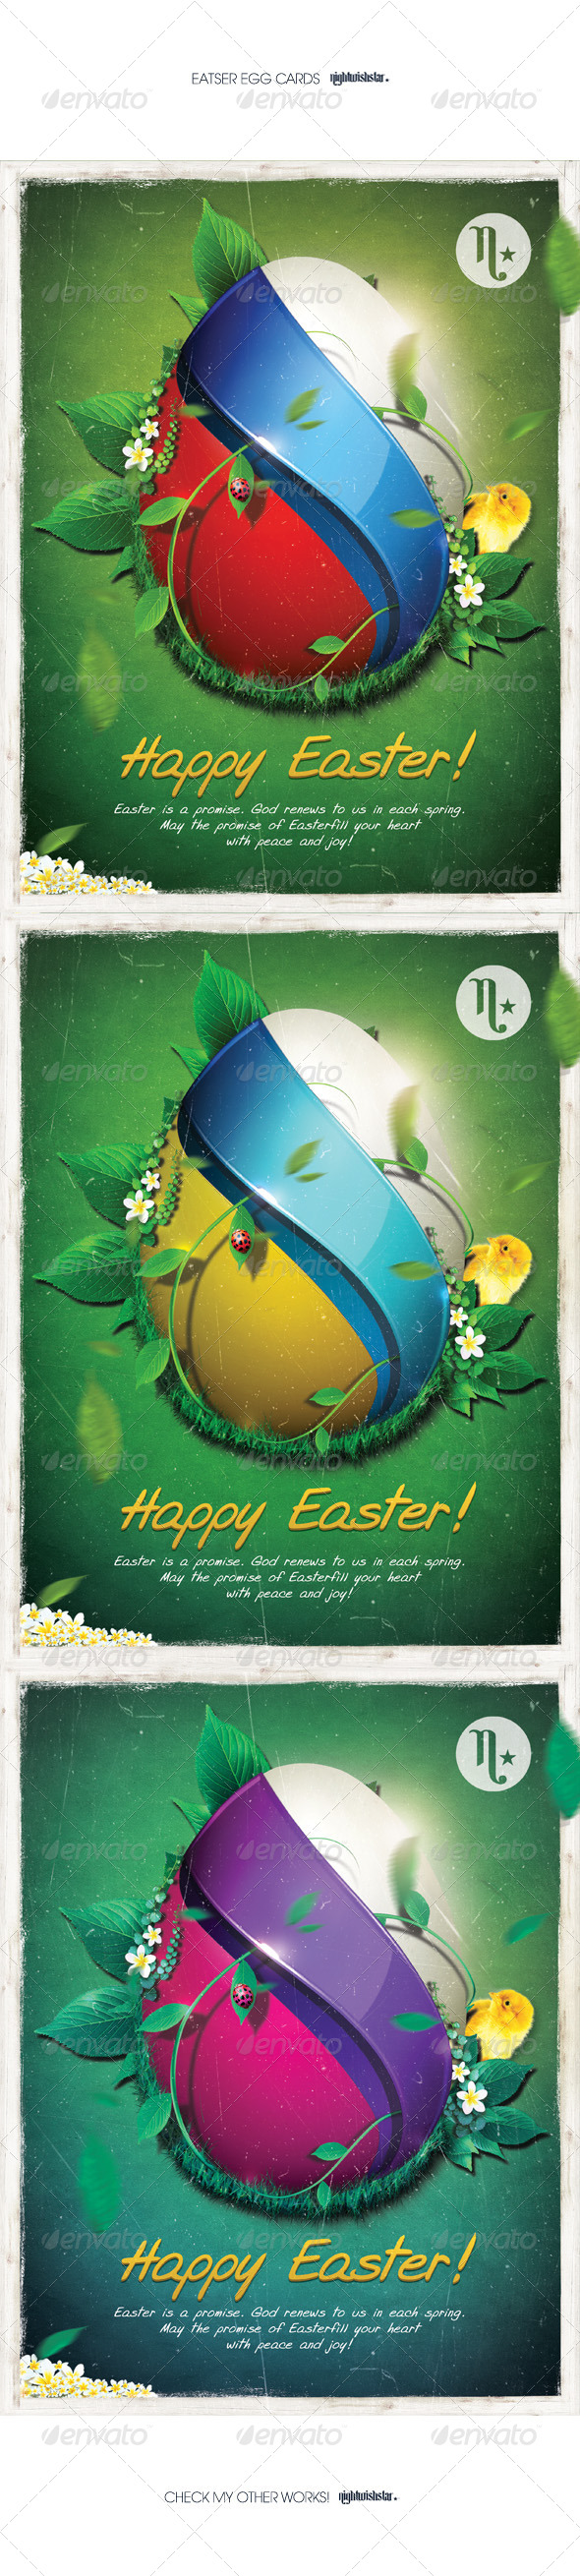 GraphicRiver Easter Egg Cards Posters 7142927